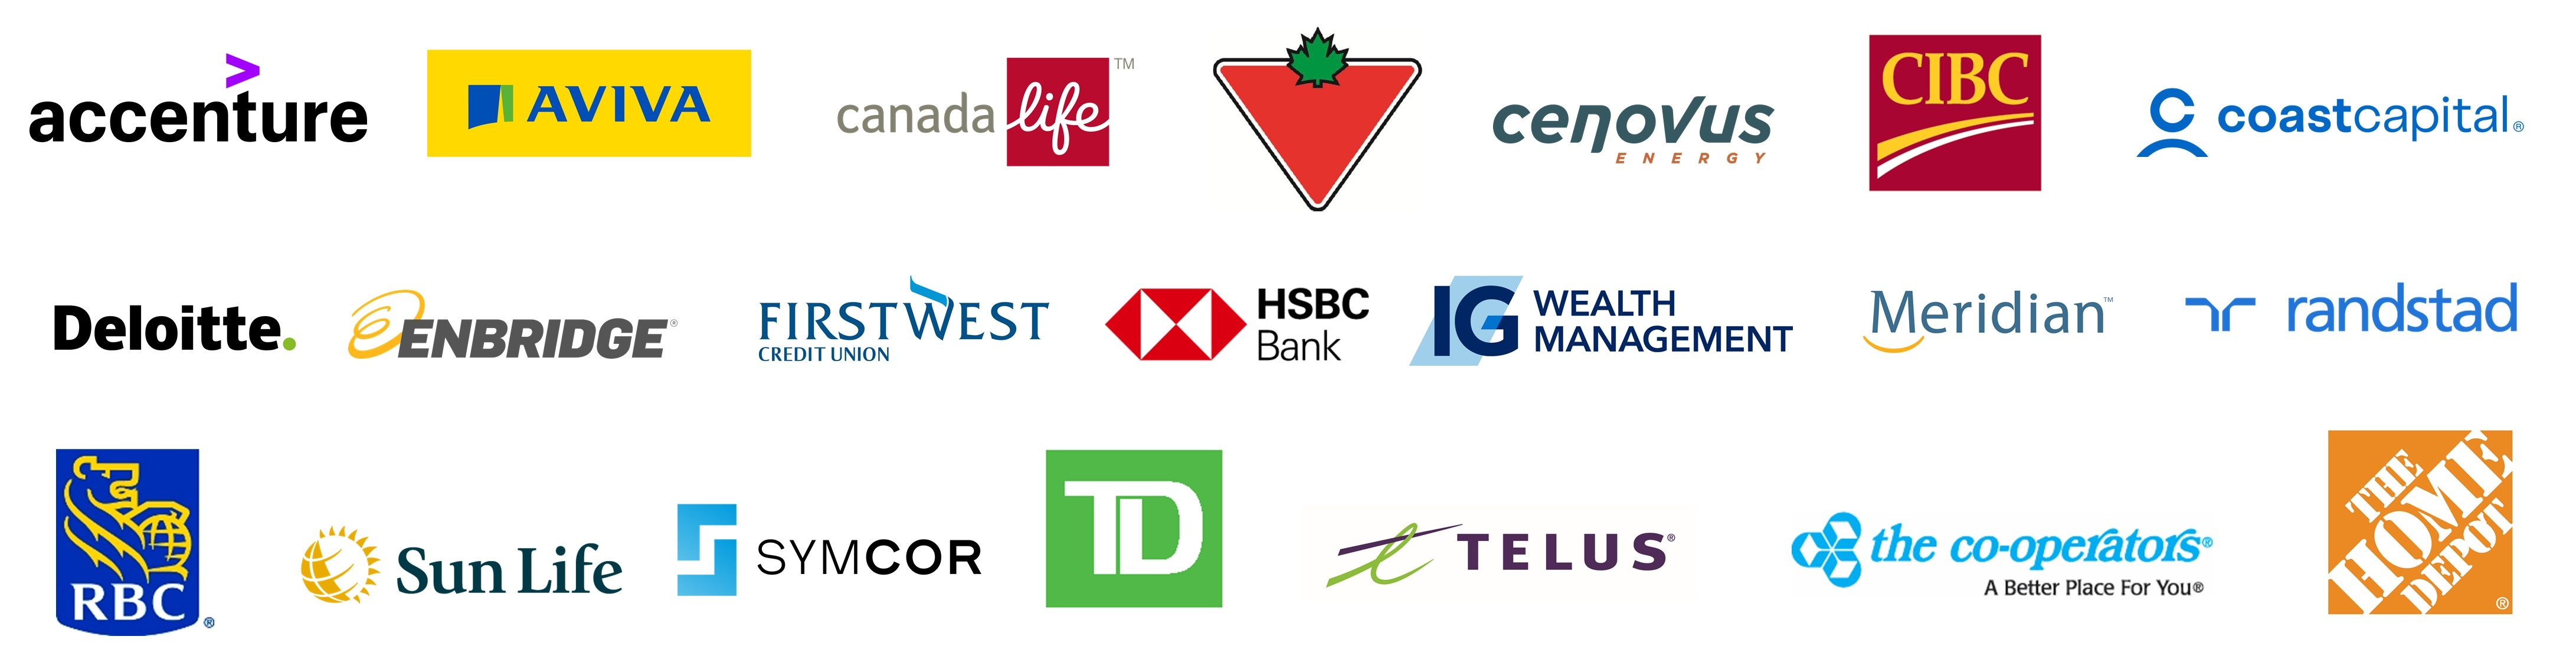 Accenture - Aviva - Canada Life - Canadian Tire - Cenovus Energy  CIBC - Coast Capital - Deloitte - Enbridge  - First West Credit Union HSBC Bank - IG Wealth Management - Meridian  - Randstad - RBC Sun Life - Symcor - TD - Telus - The Co-operators - The Home Depot